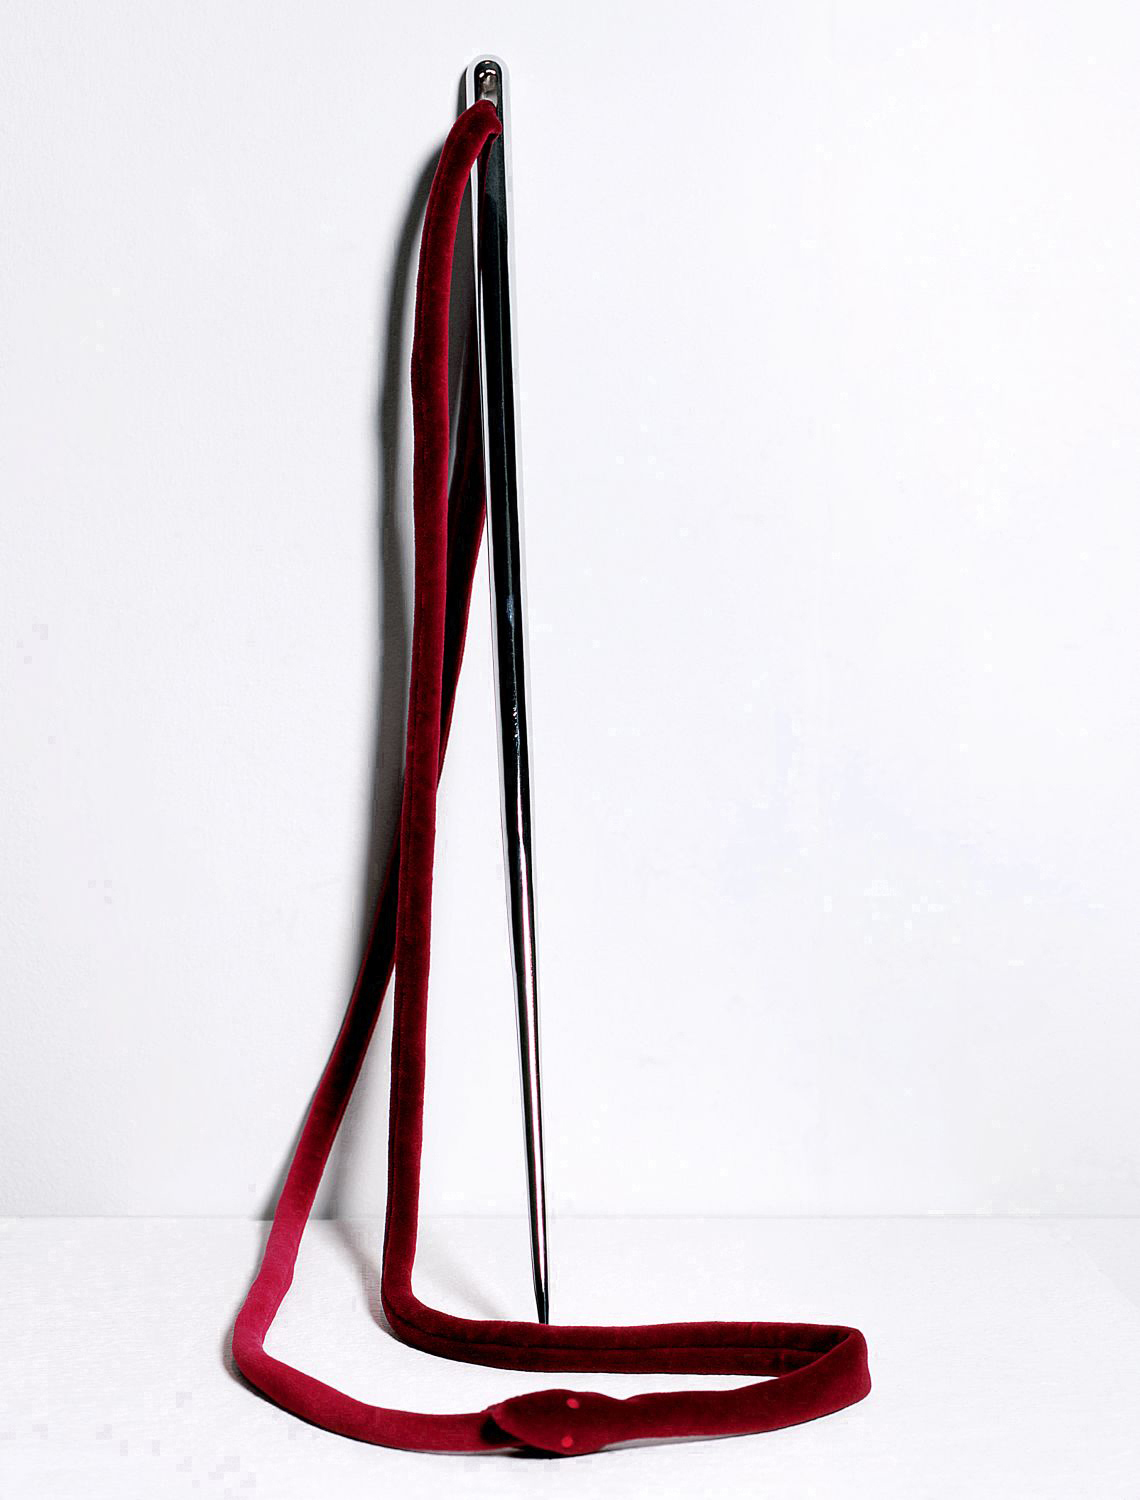 Maro Michalakakos   L'Entre Devoration   Velvet, stainless steel  36x27x28inches